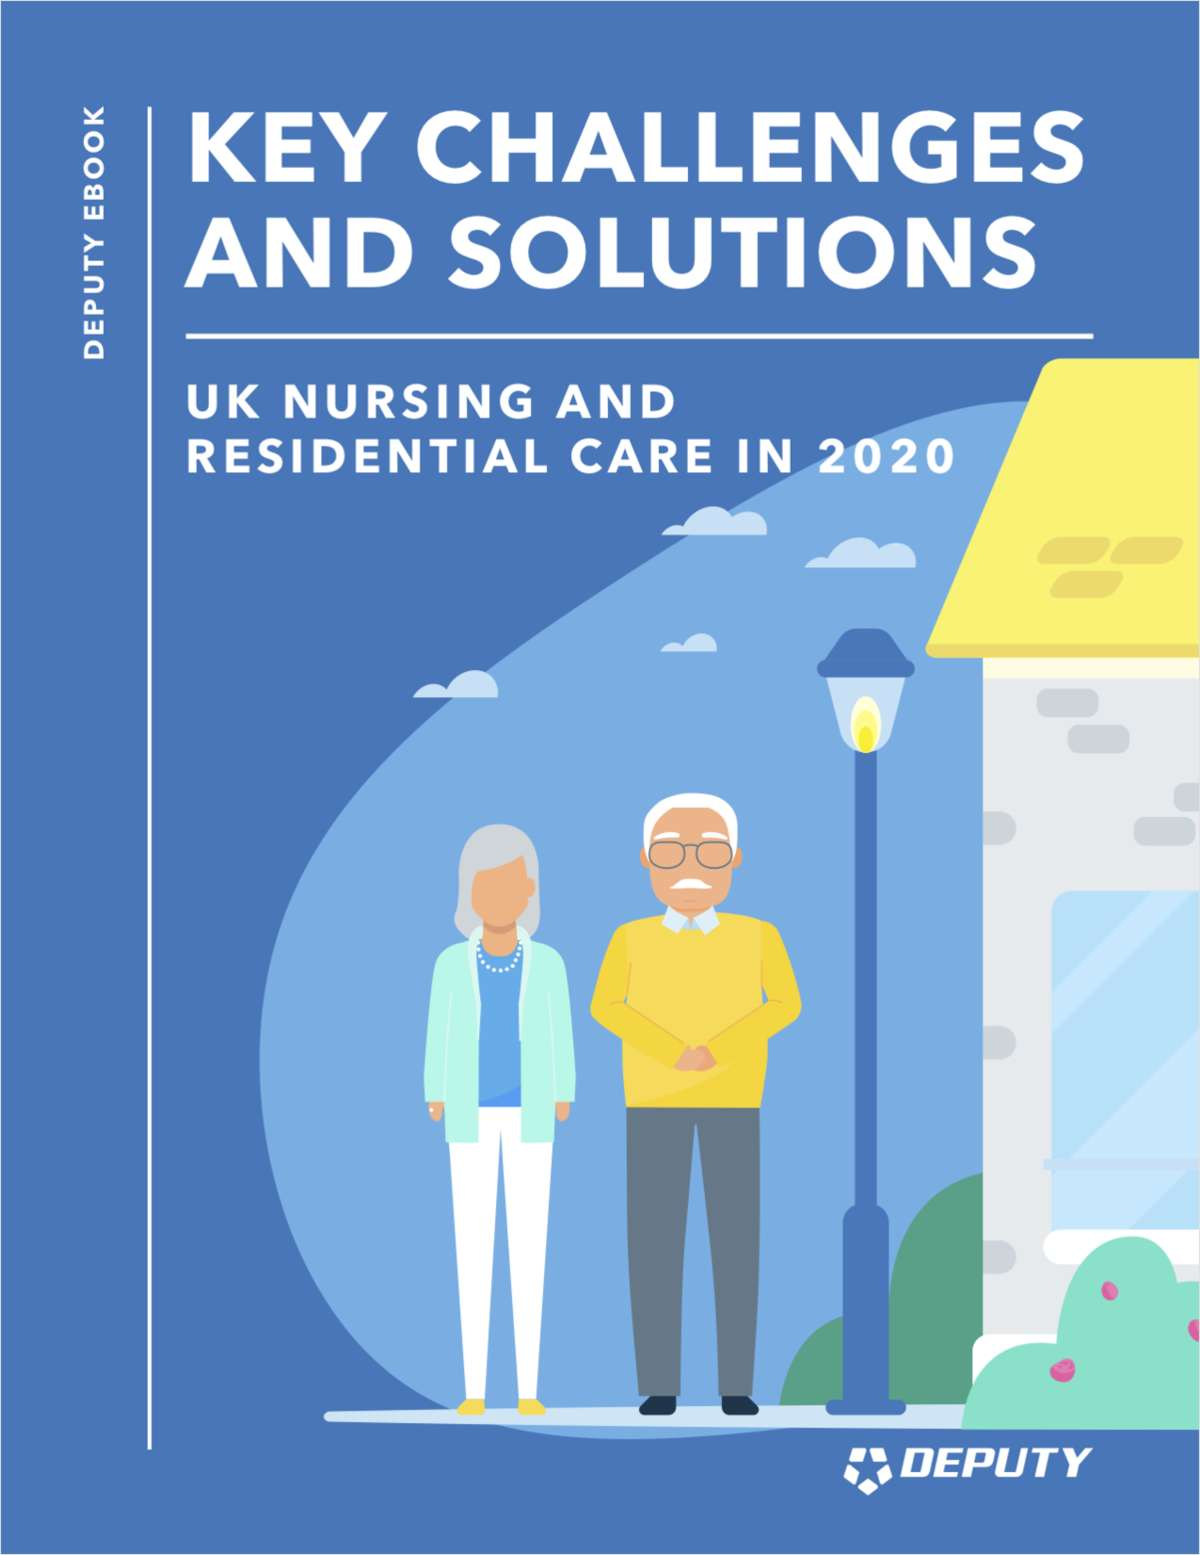 KEY CHALLENGES & SOLUTIONS   - UK Nursing and Residential Care in 2020